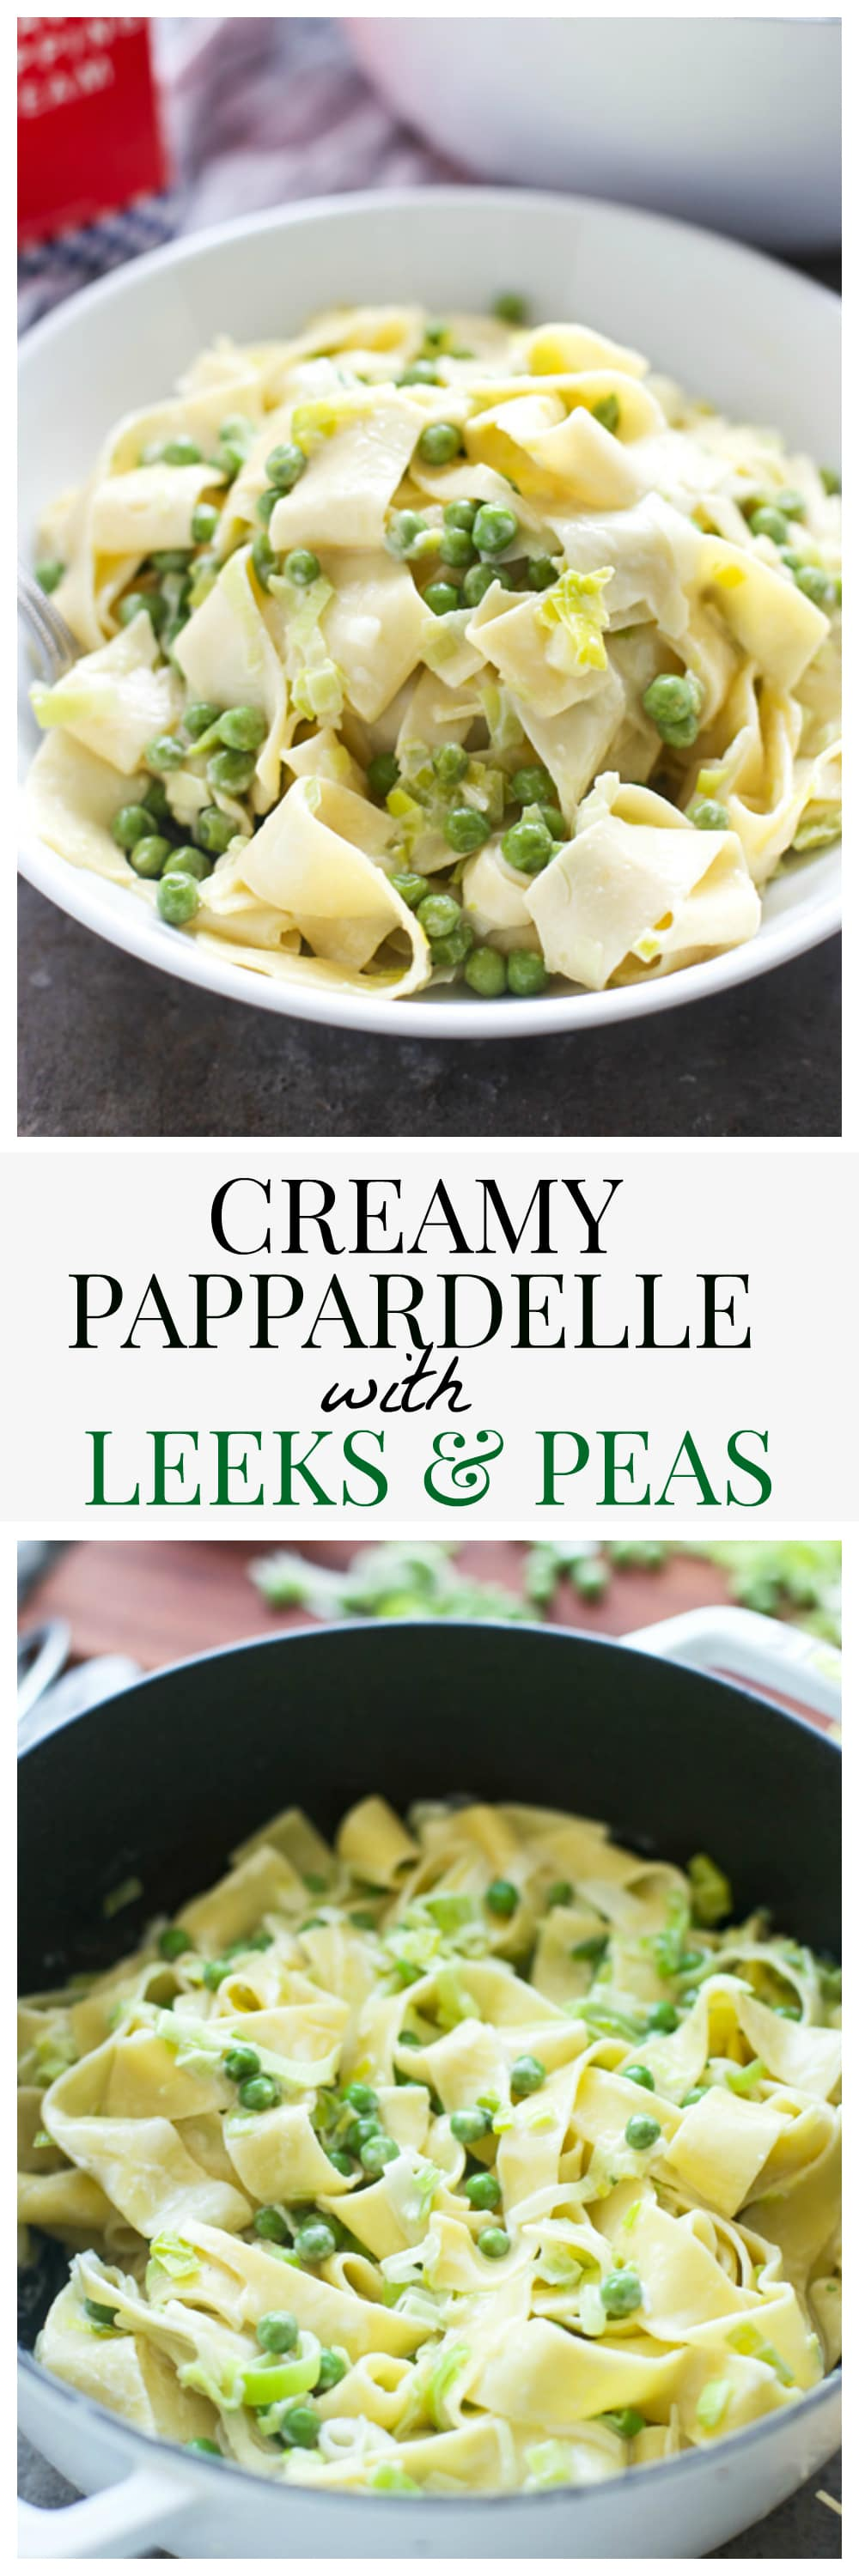 Creamy Papparadelle with Leeks and Peas